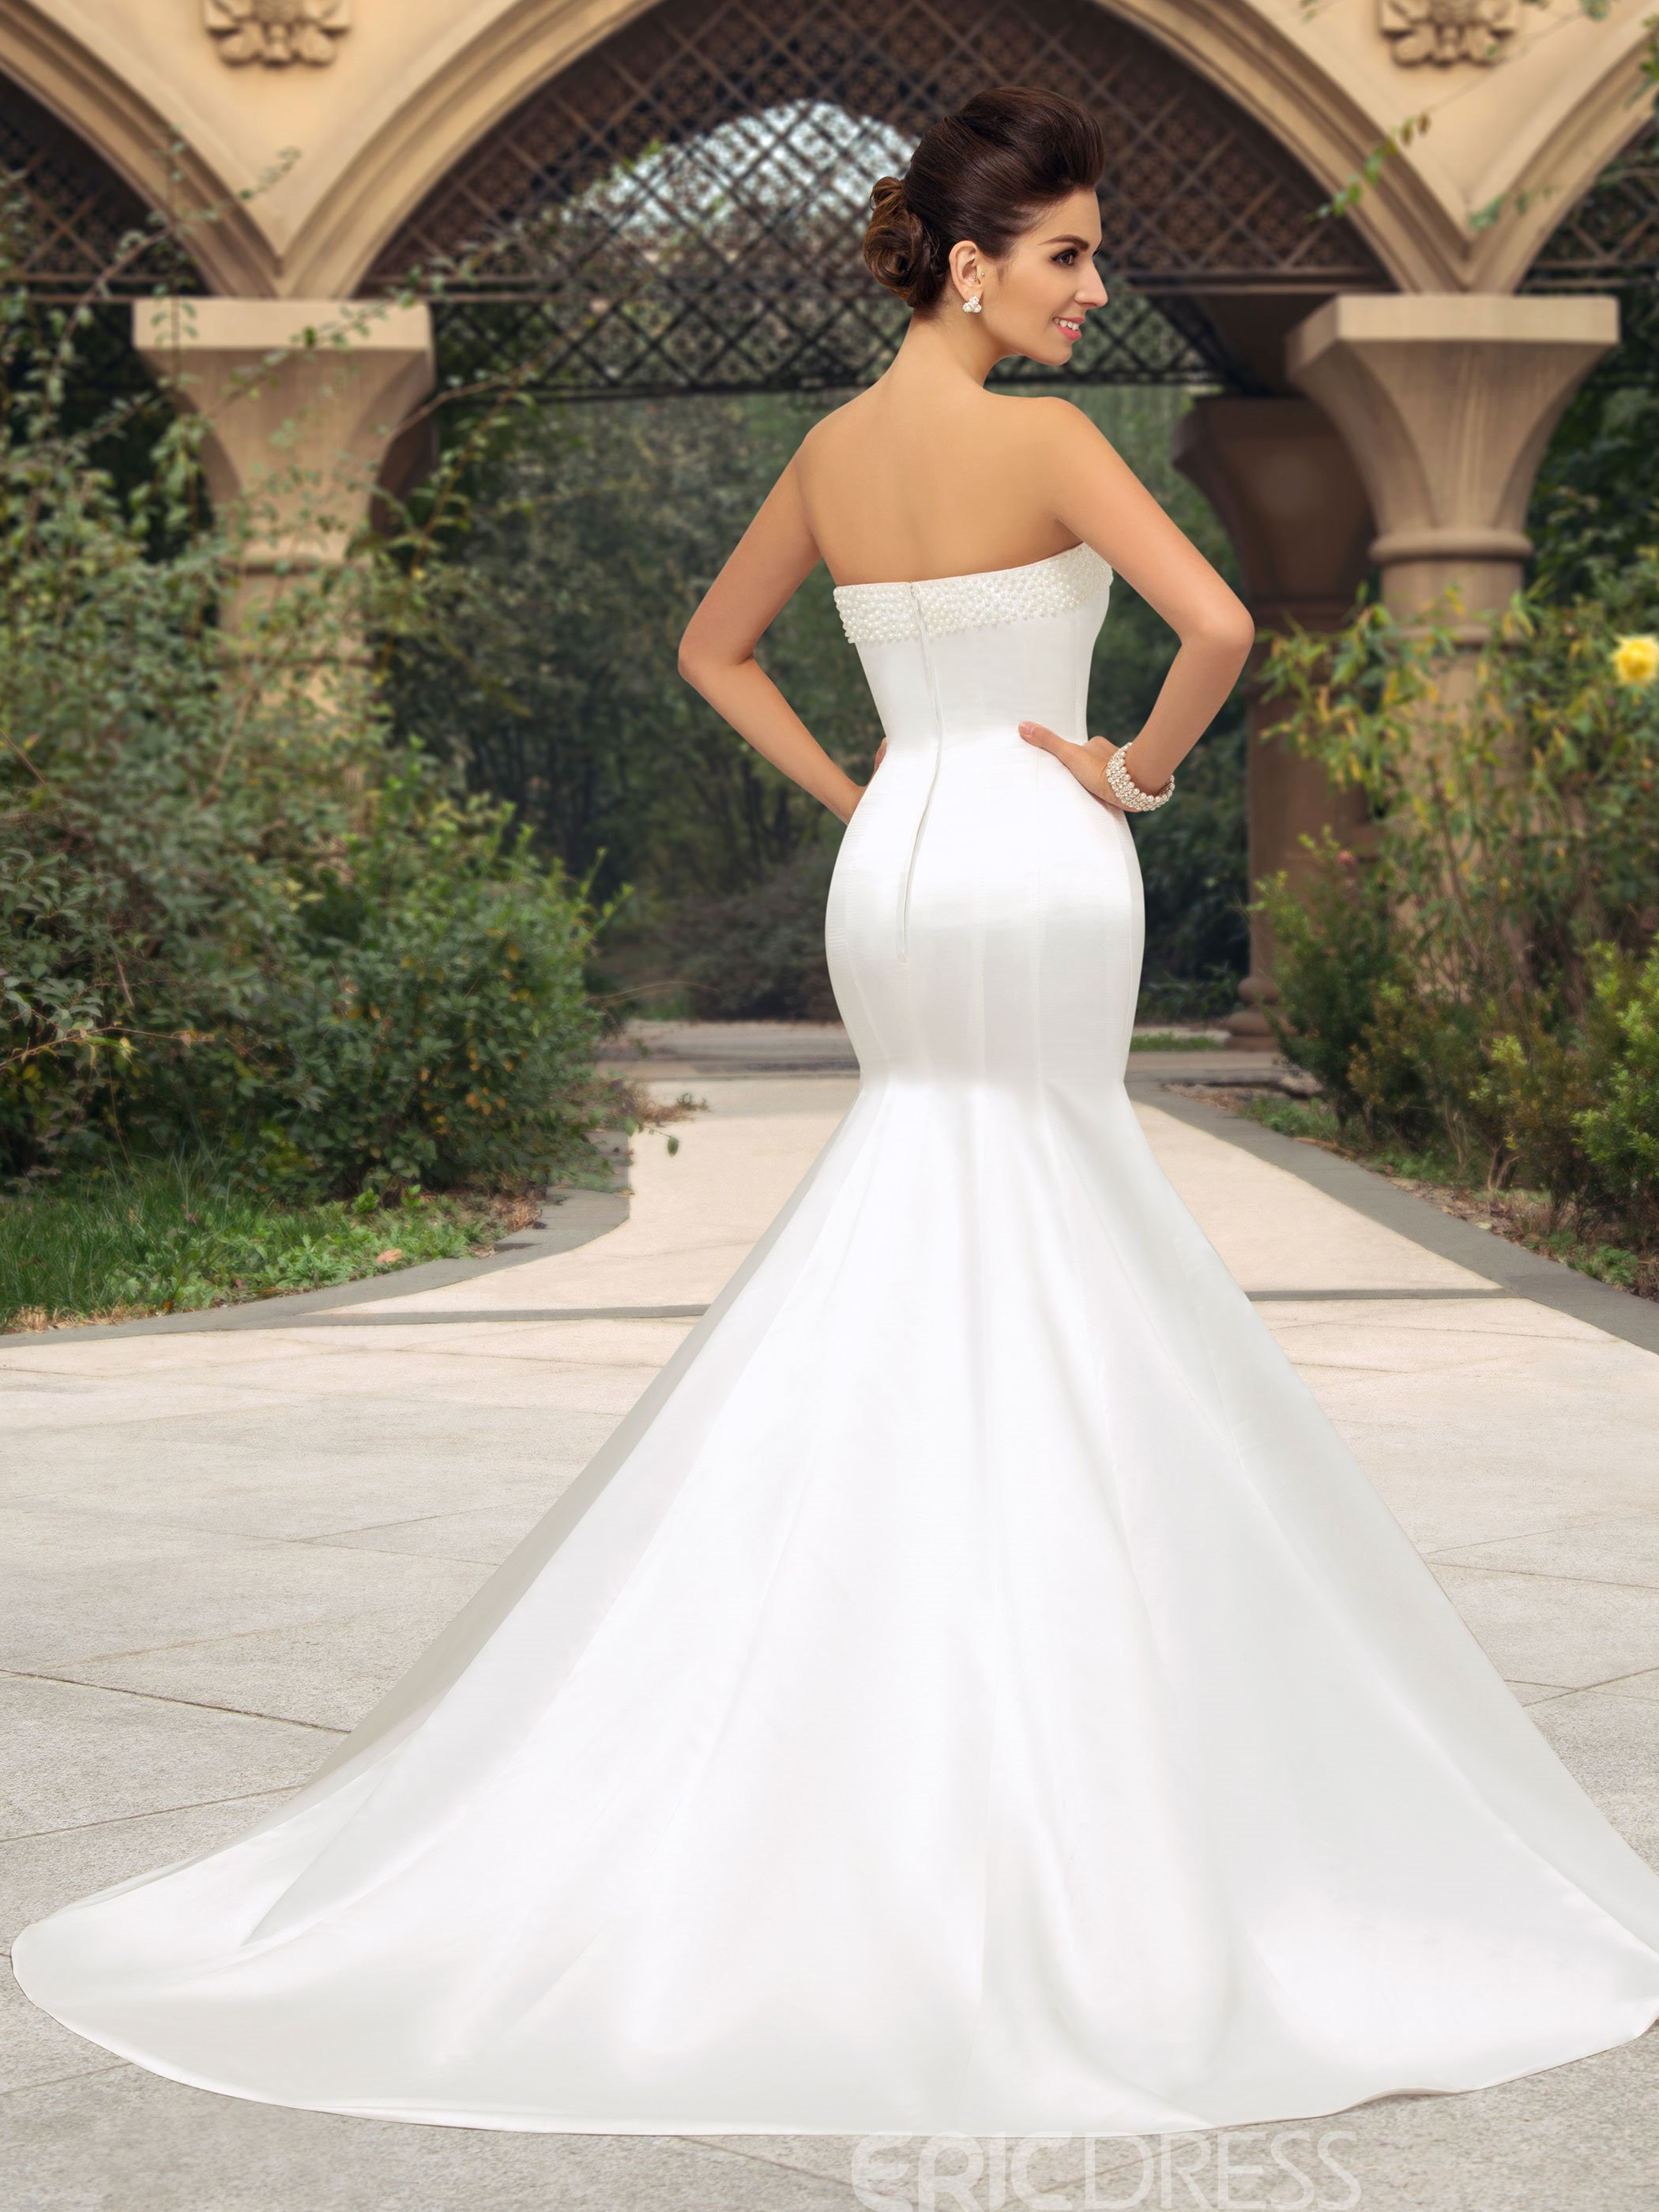 Concise Strapless Pearl Court Train Mermaid Wedding Dress